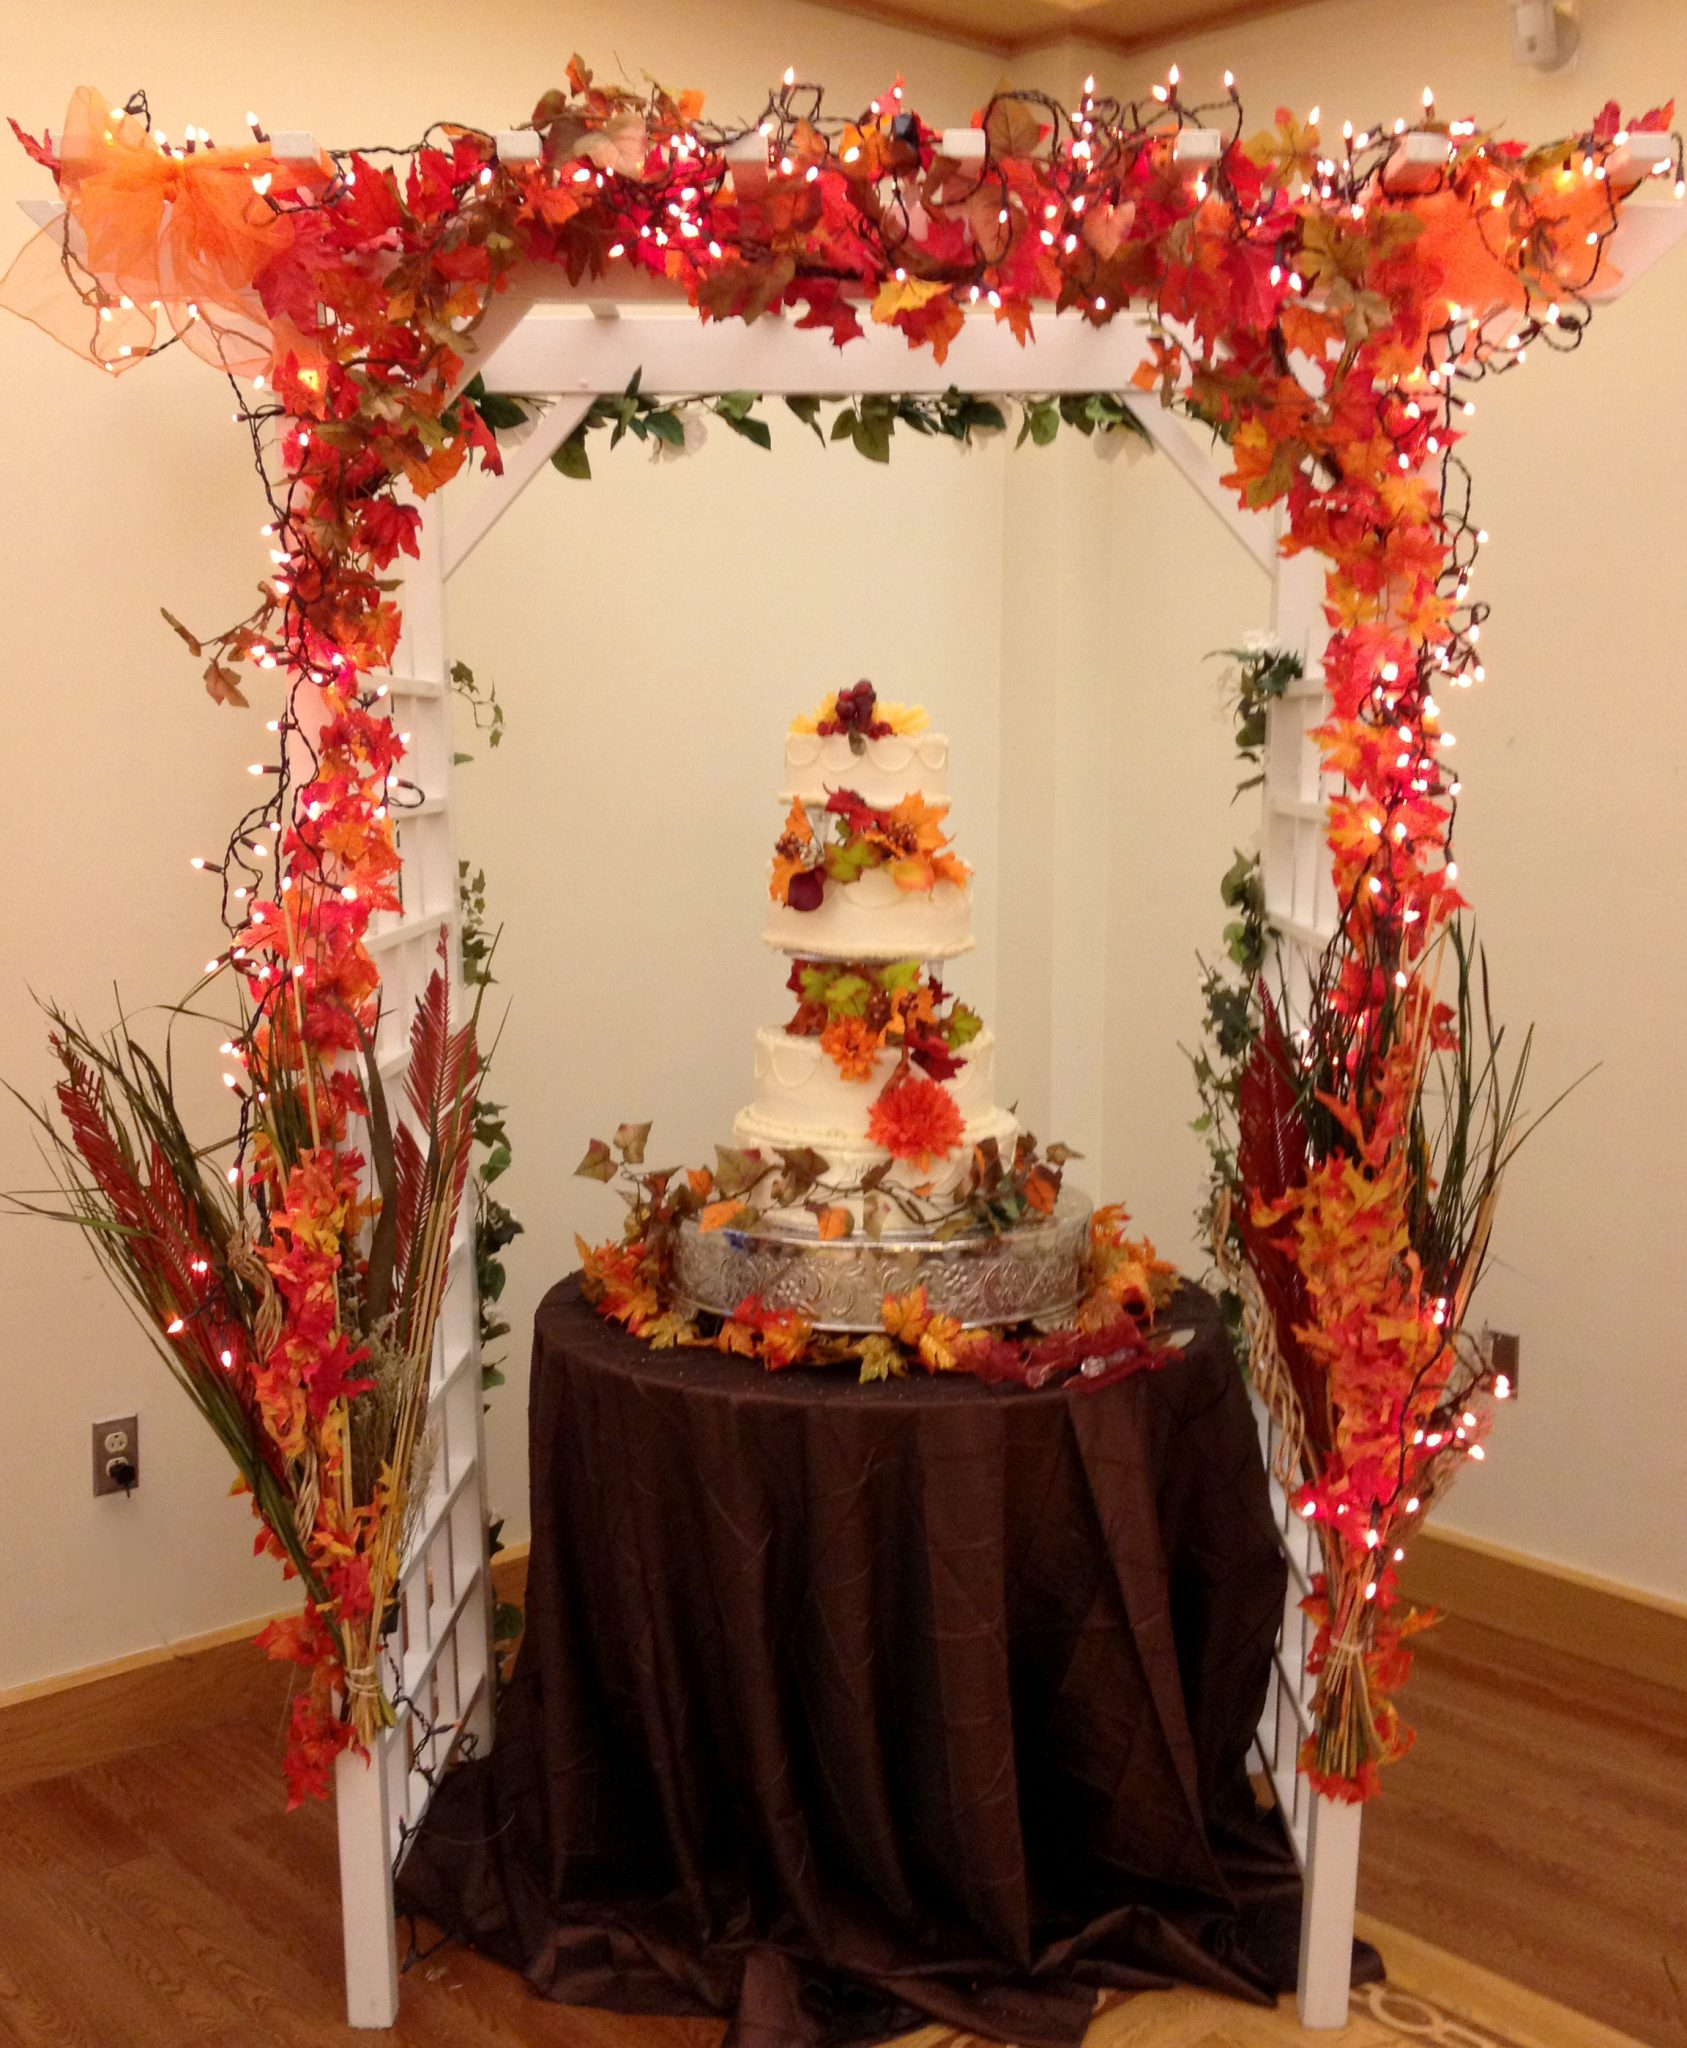 Decorations For A Halloween Party: Spring, Garden, Summer, Autumn, Holiday, Religious